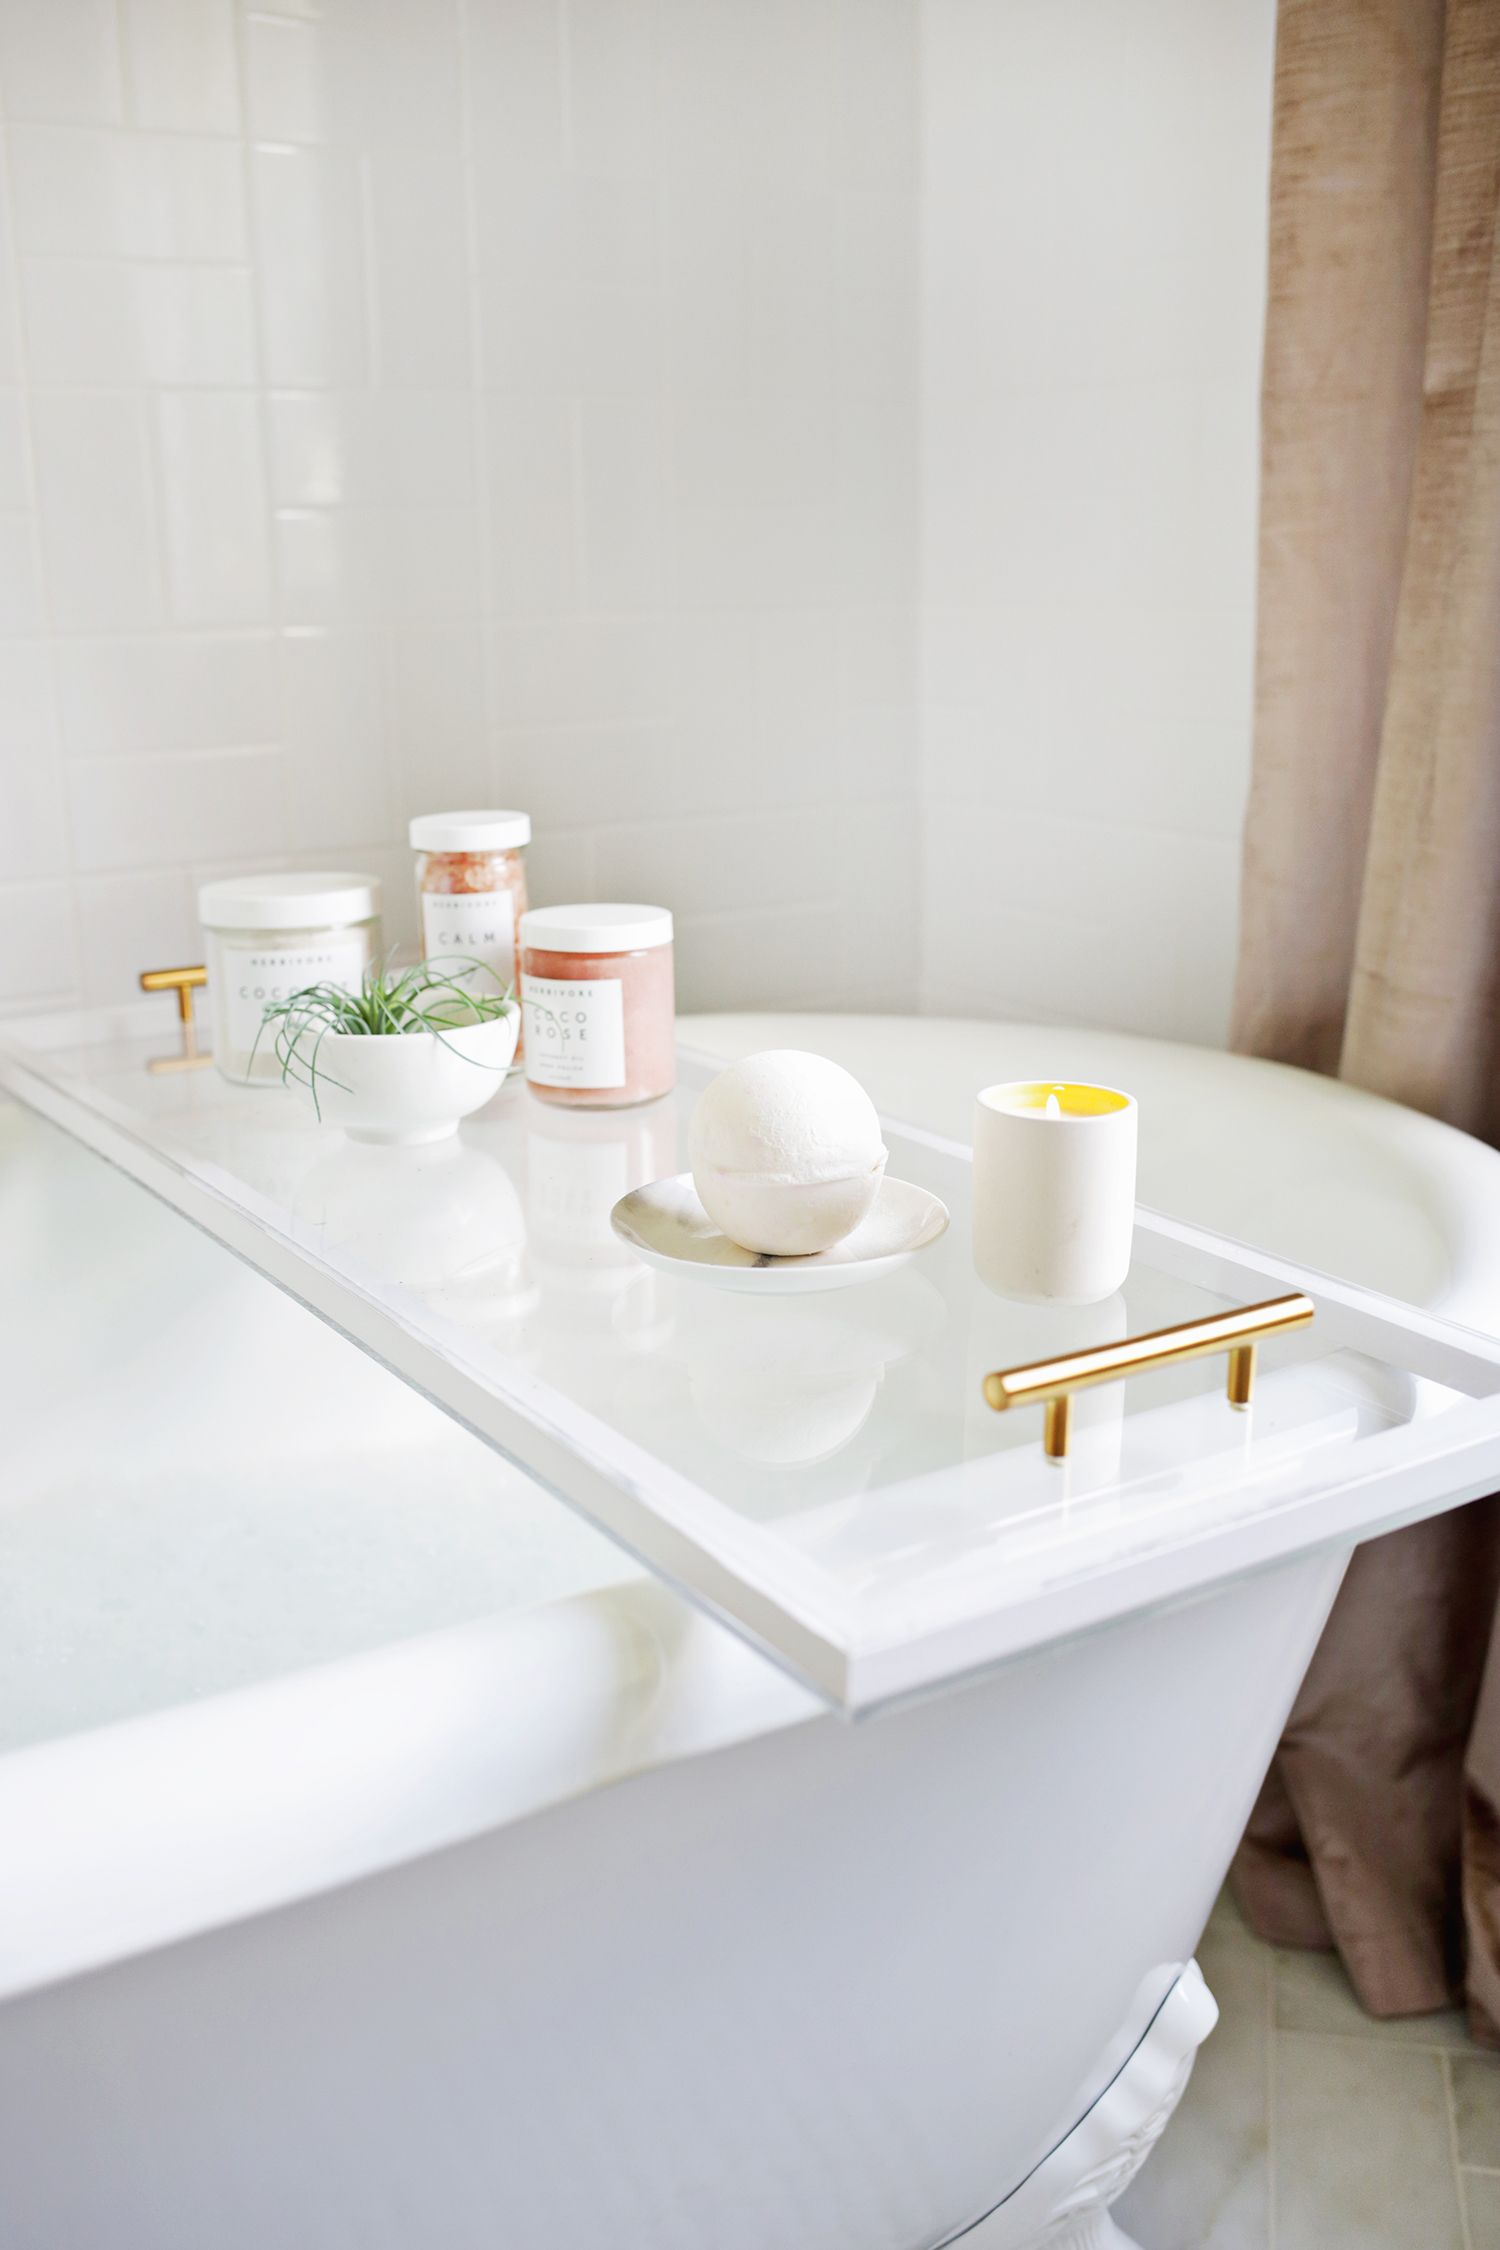 Lucite Bathtub Caddy DIY | Homemade & DIY | Pinterest | Bathtub ...